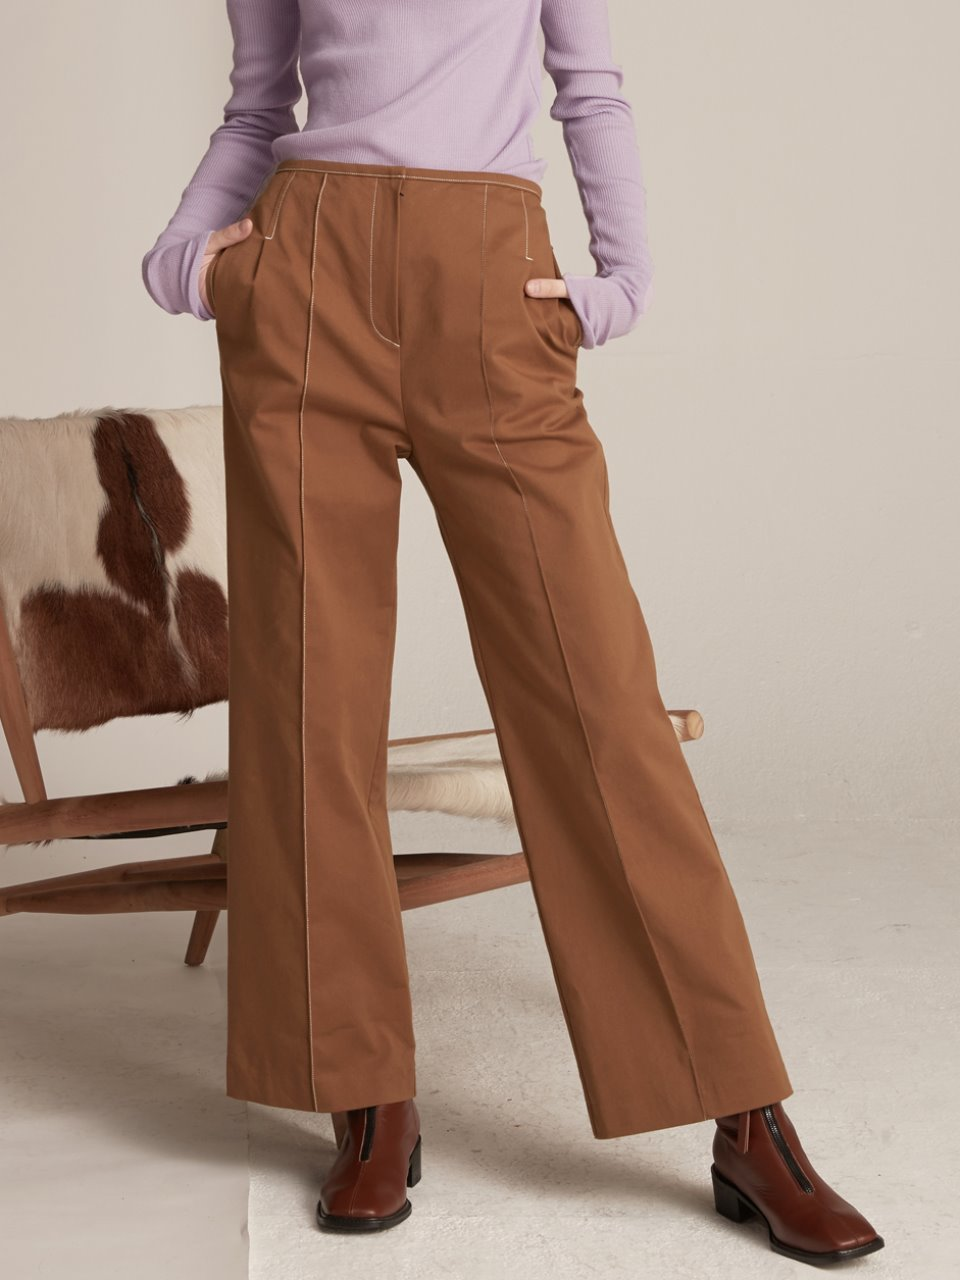 Pin-tuck Stitched Pants - Brown